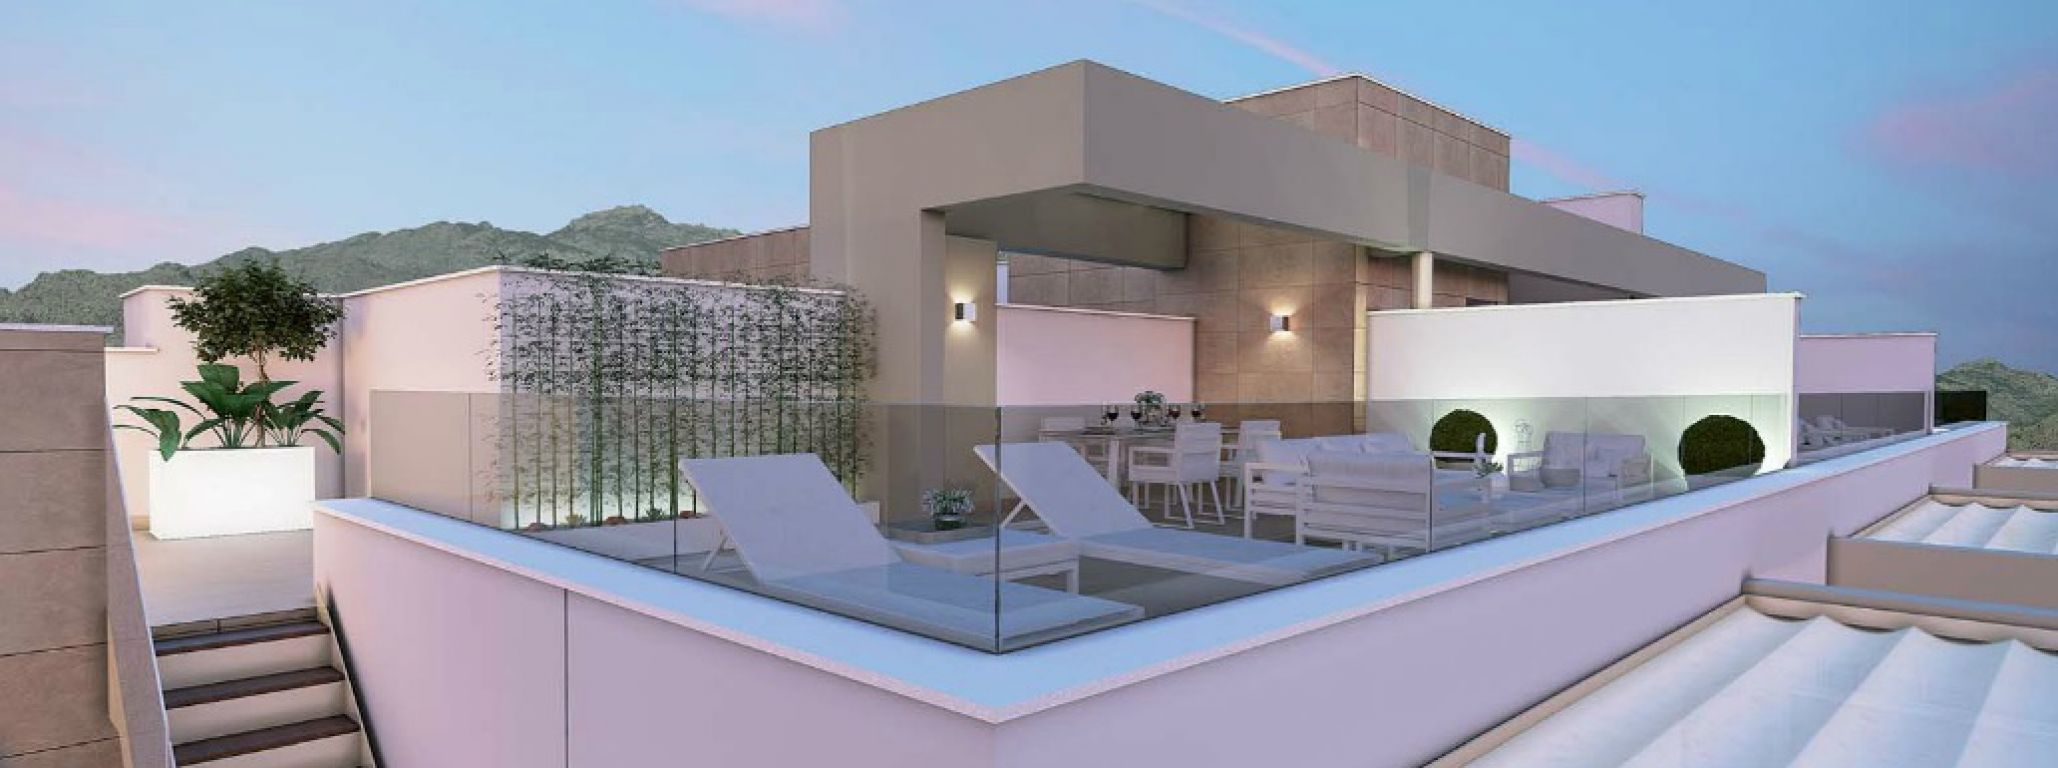 Exclusive penthouse in La Cala de Mijas.